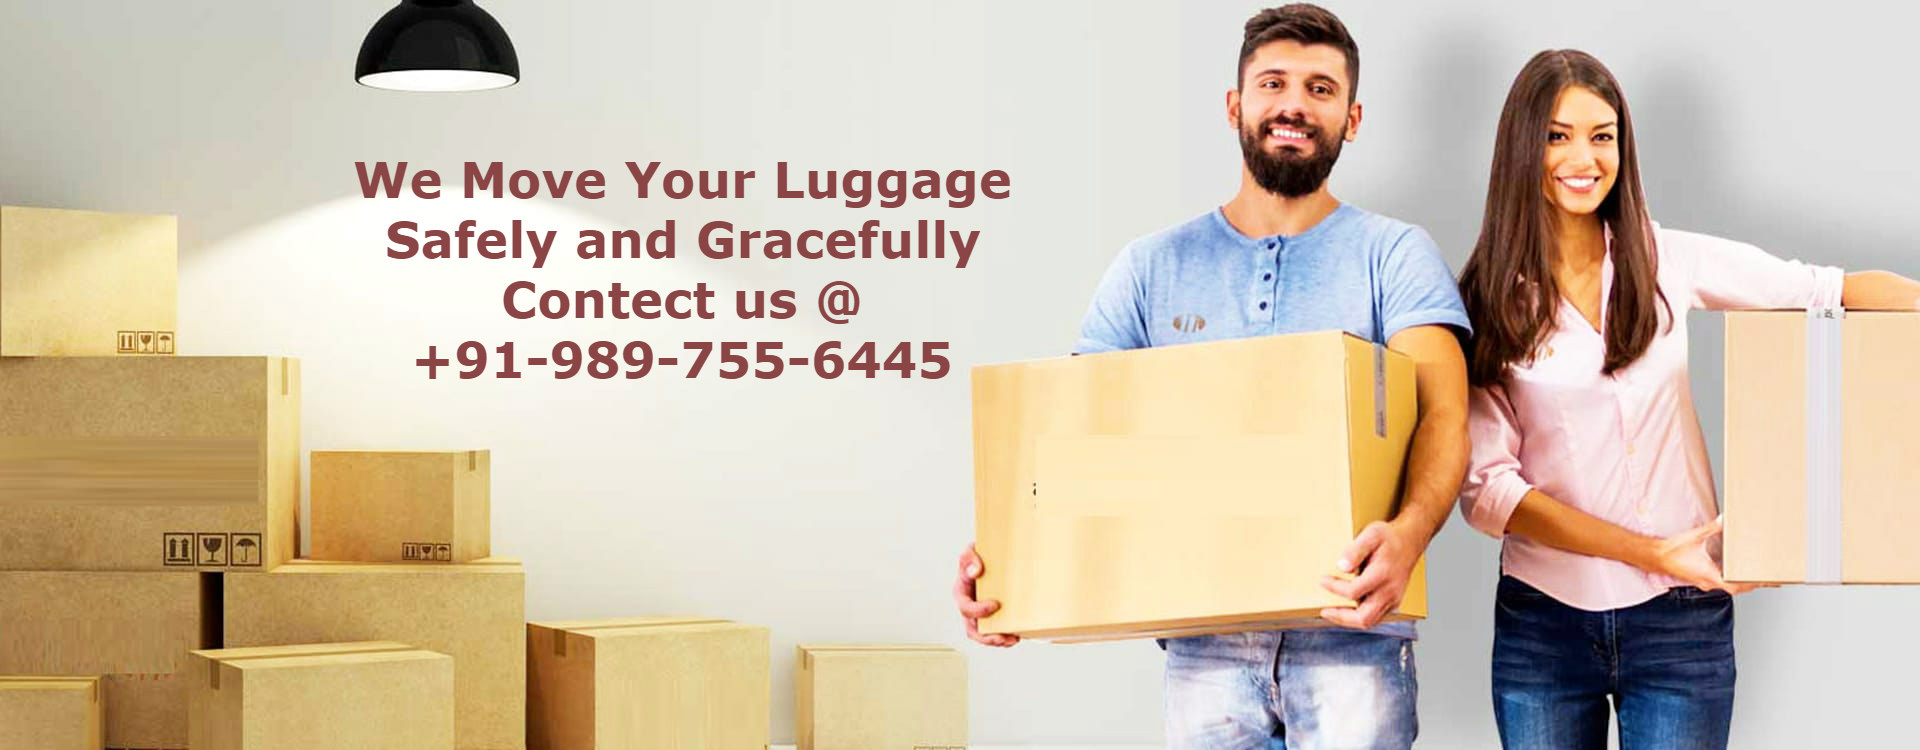 Packers and Movers in Noida | +91-989-755-6445 | Home Shifting Services In Noida